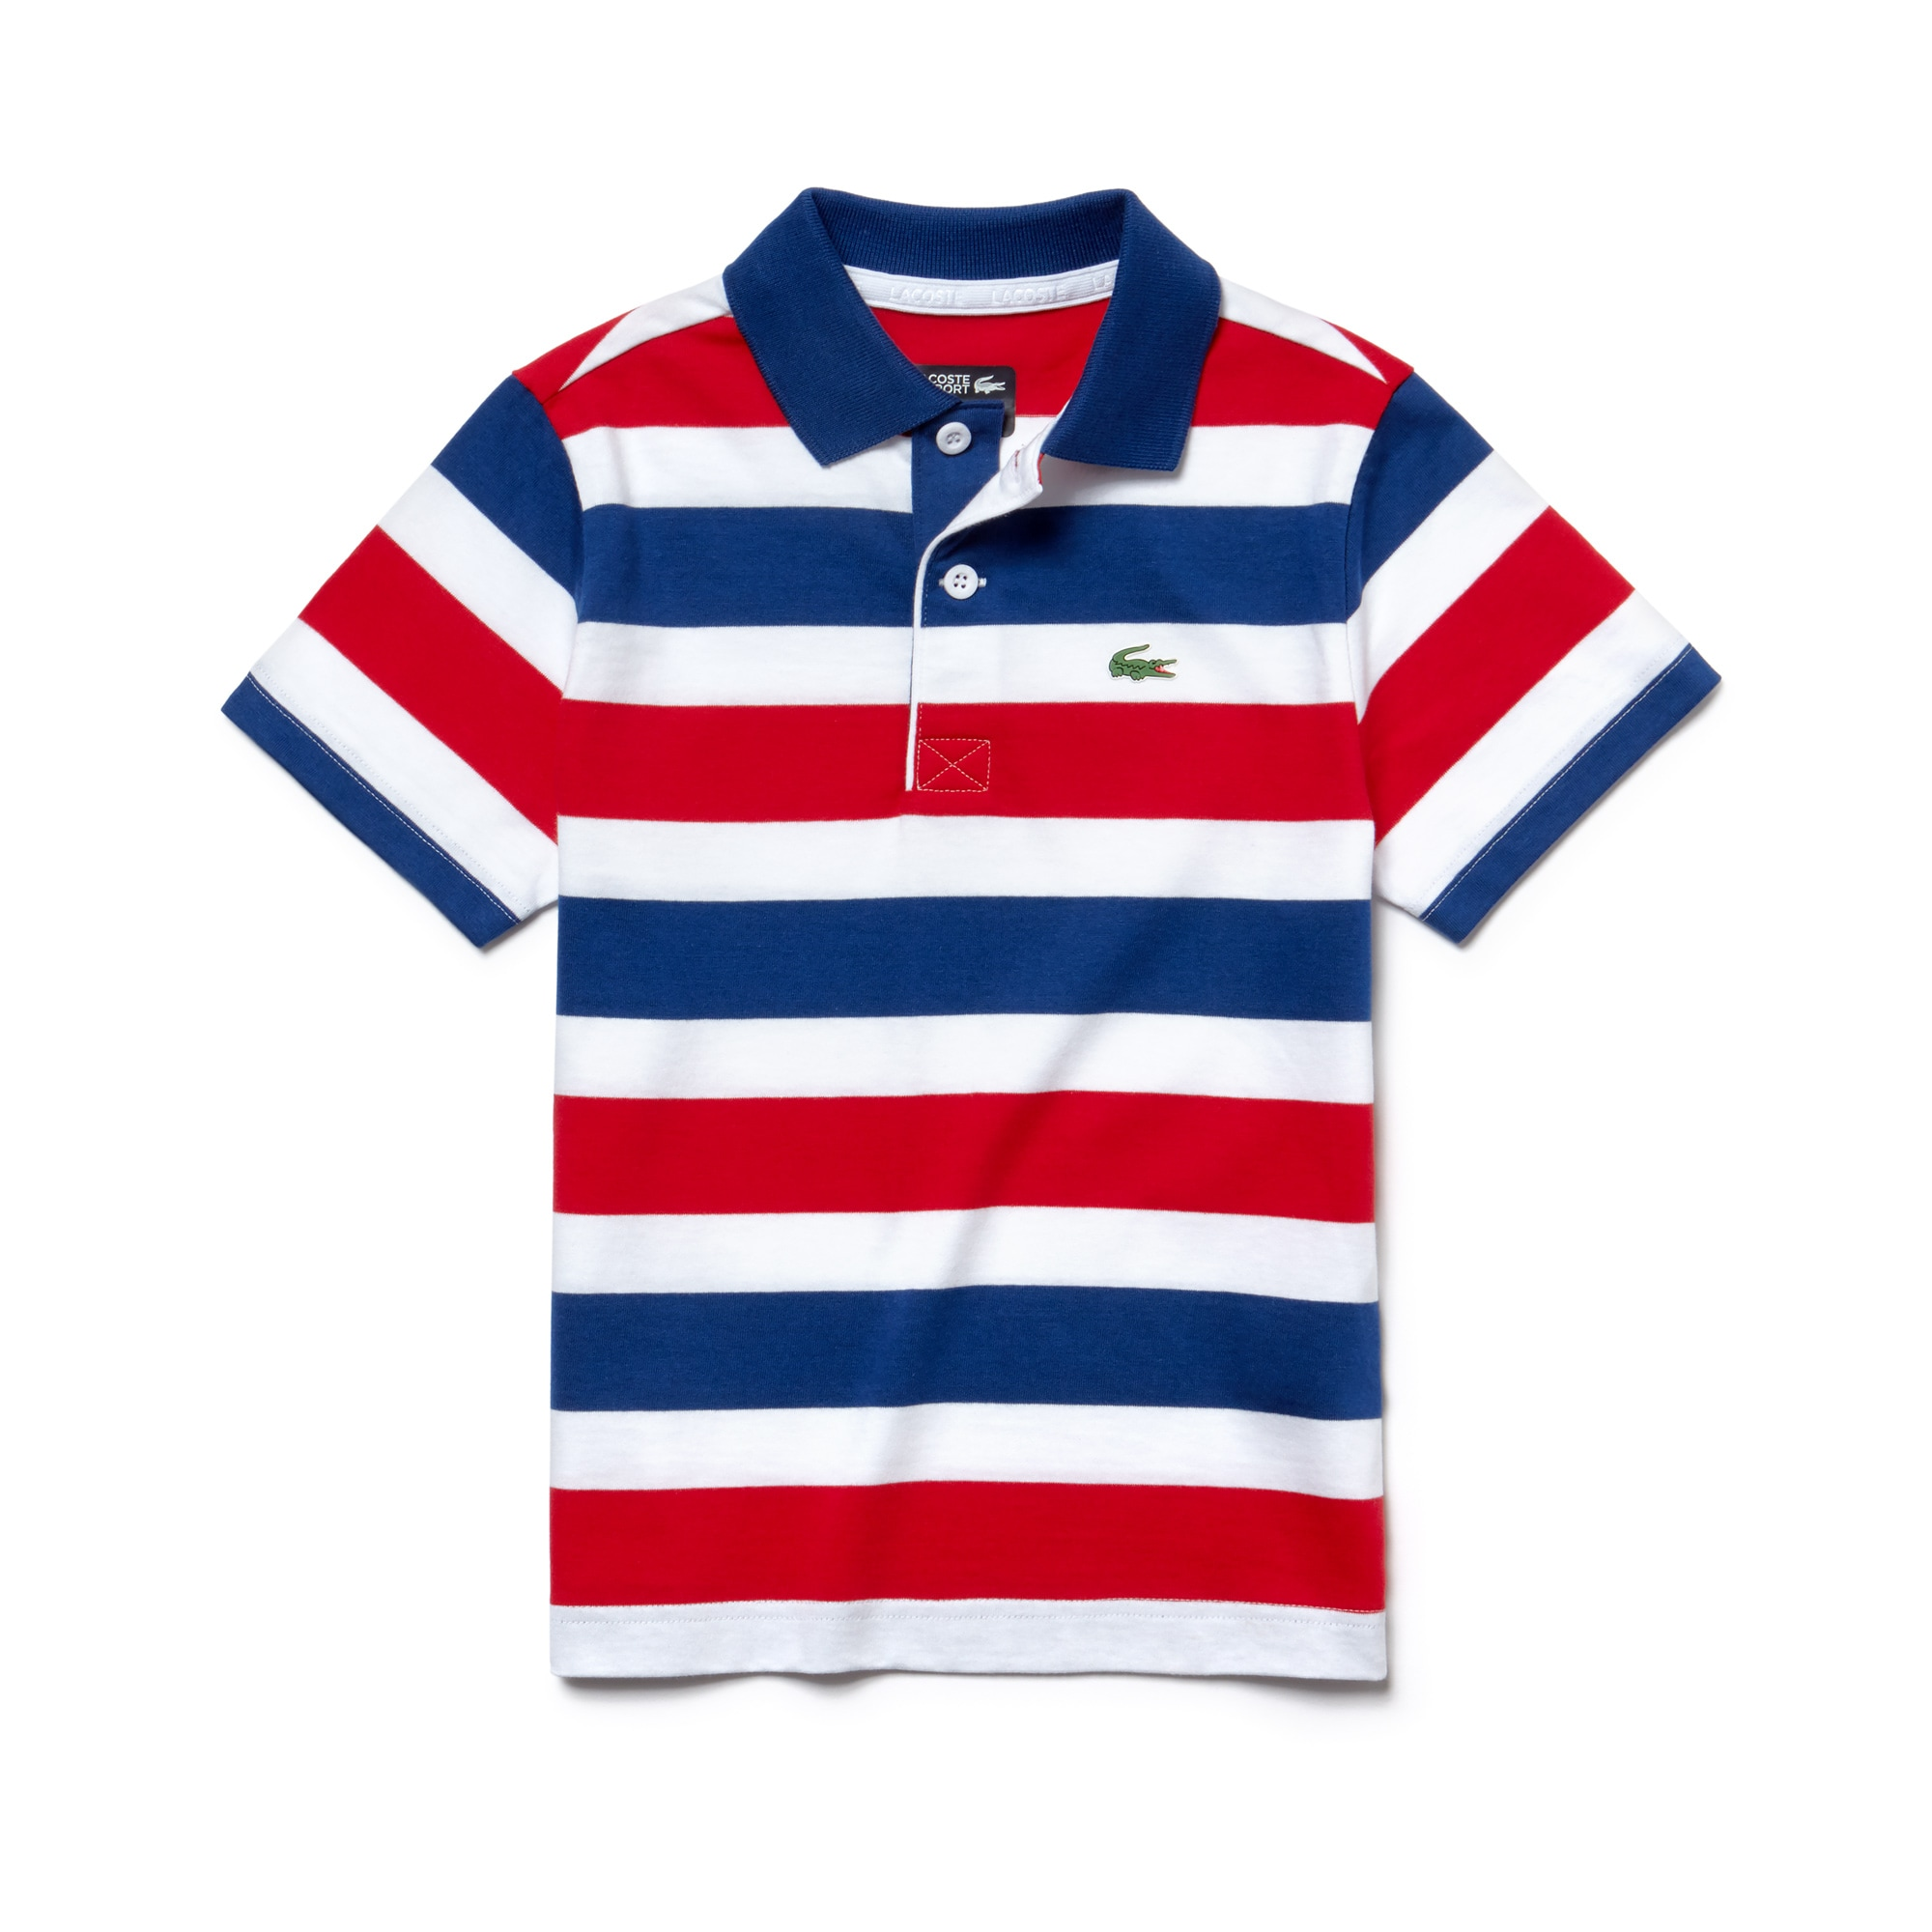 Boys' Lacoste SPORT Striped Cotton Jersey Tennis Polo